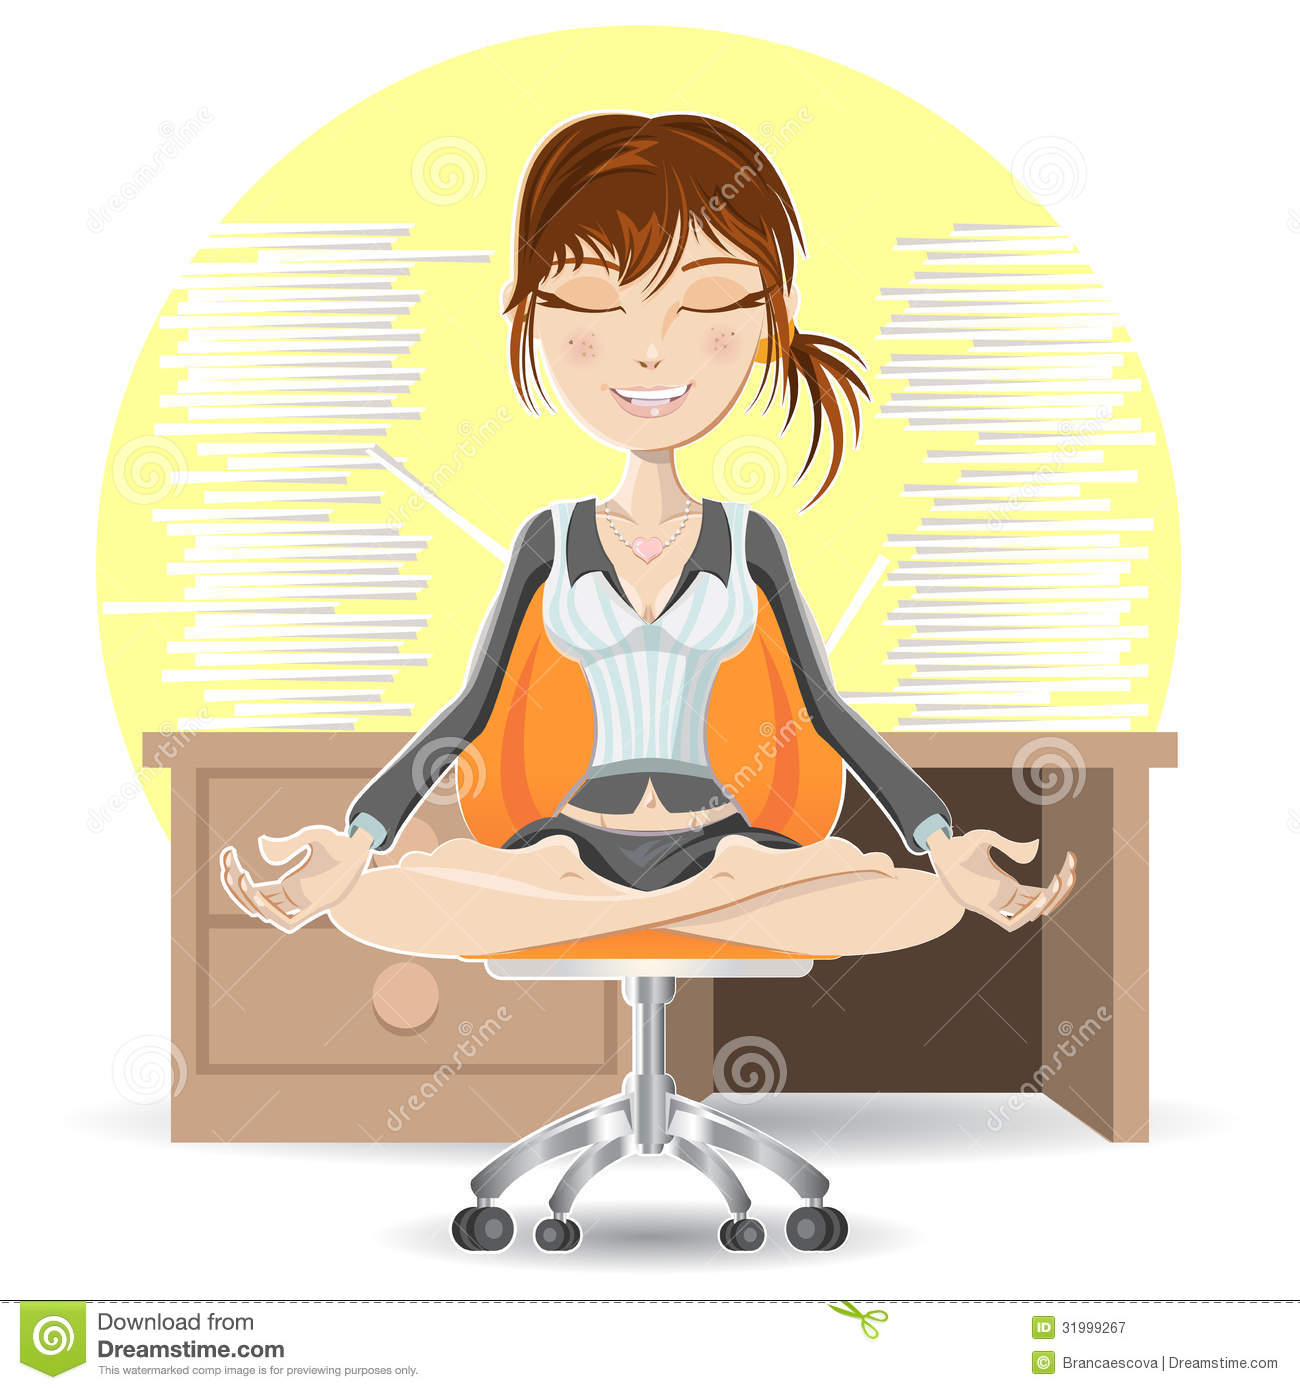 yoga office chair with Royalty Free Stock Photography Meditation Office Woman Calming Down Busy Environment Image31999267 on Clipart Caring Stick Man further Yoga For Recruiters Relaxed For A Better Work Life Balance as well Best Desk Exercise Equipment Fitness Deskercise For Work Amazon Nike Reebok A6824746 as well A 82 additionally Health And Wellness In The Workplace.